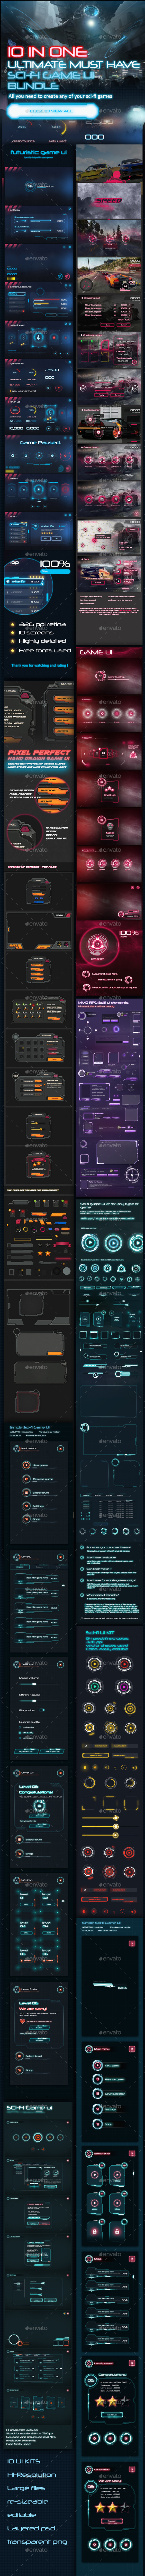 GraphicRiver 10 in 1 Ultimate Sci-Fi UI Bundle 20625848